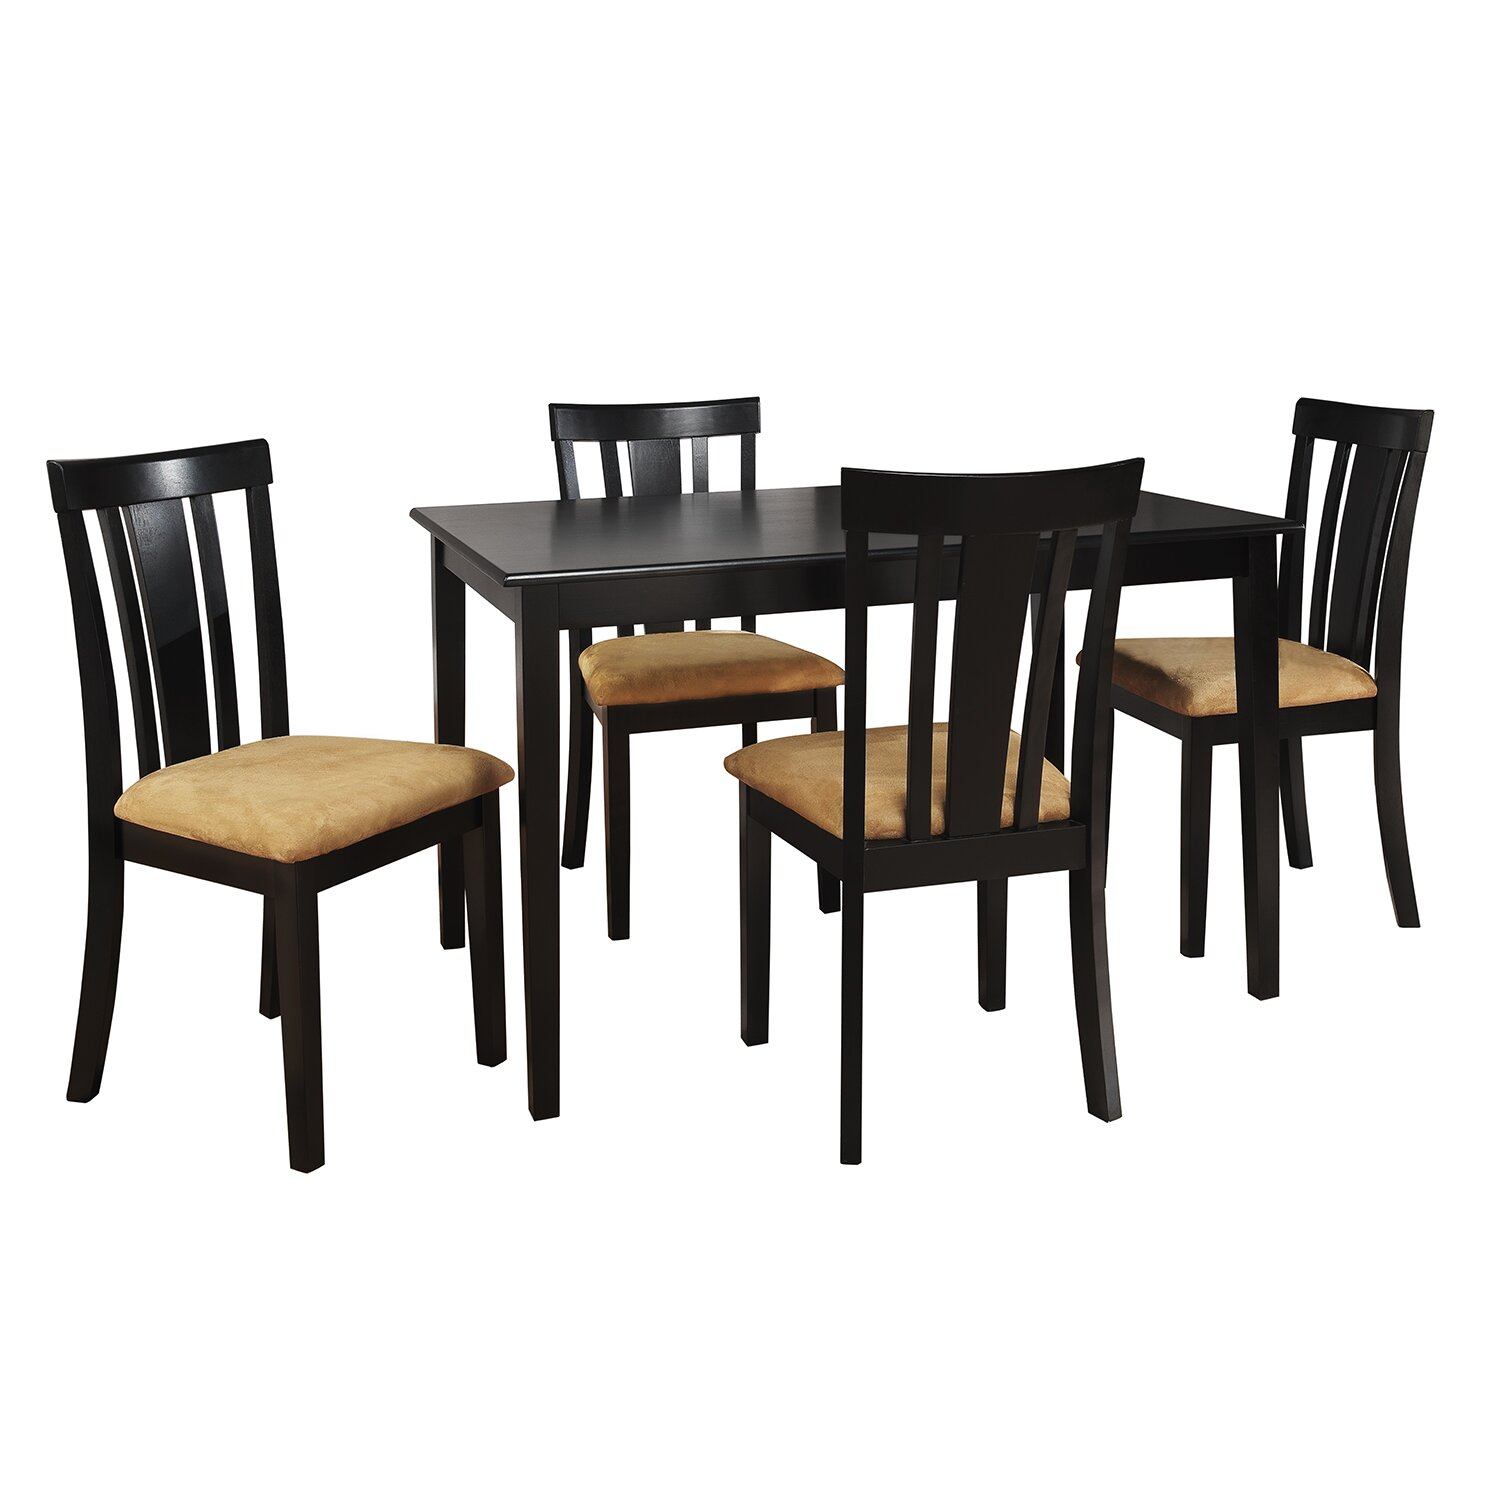 Kingstown home jeannette 5 piece dining set reviews for 5 piece dining set